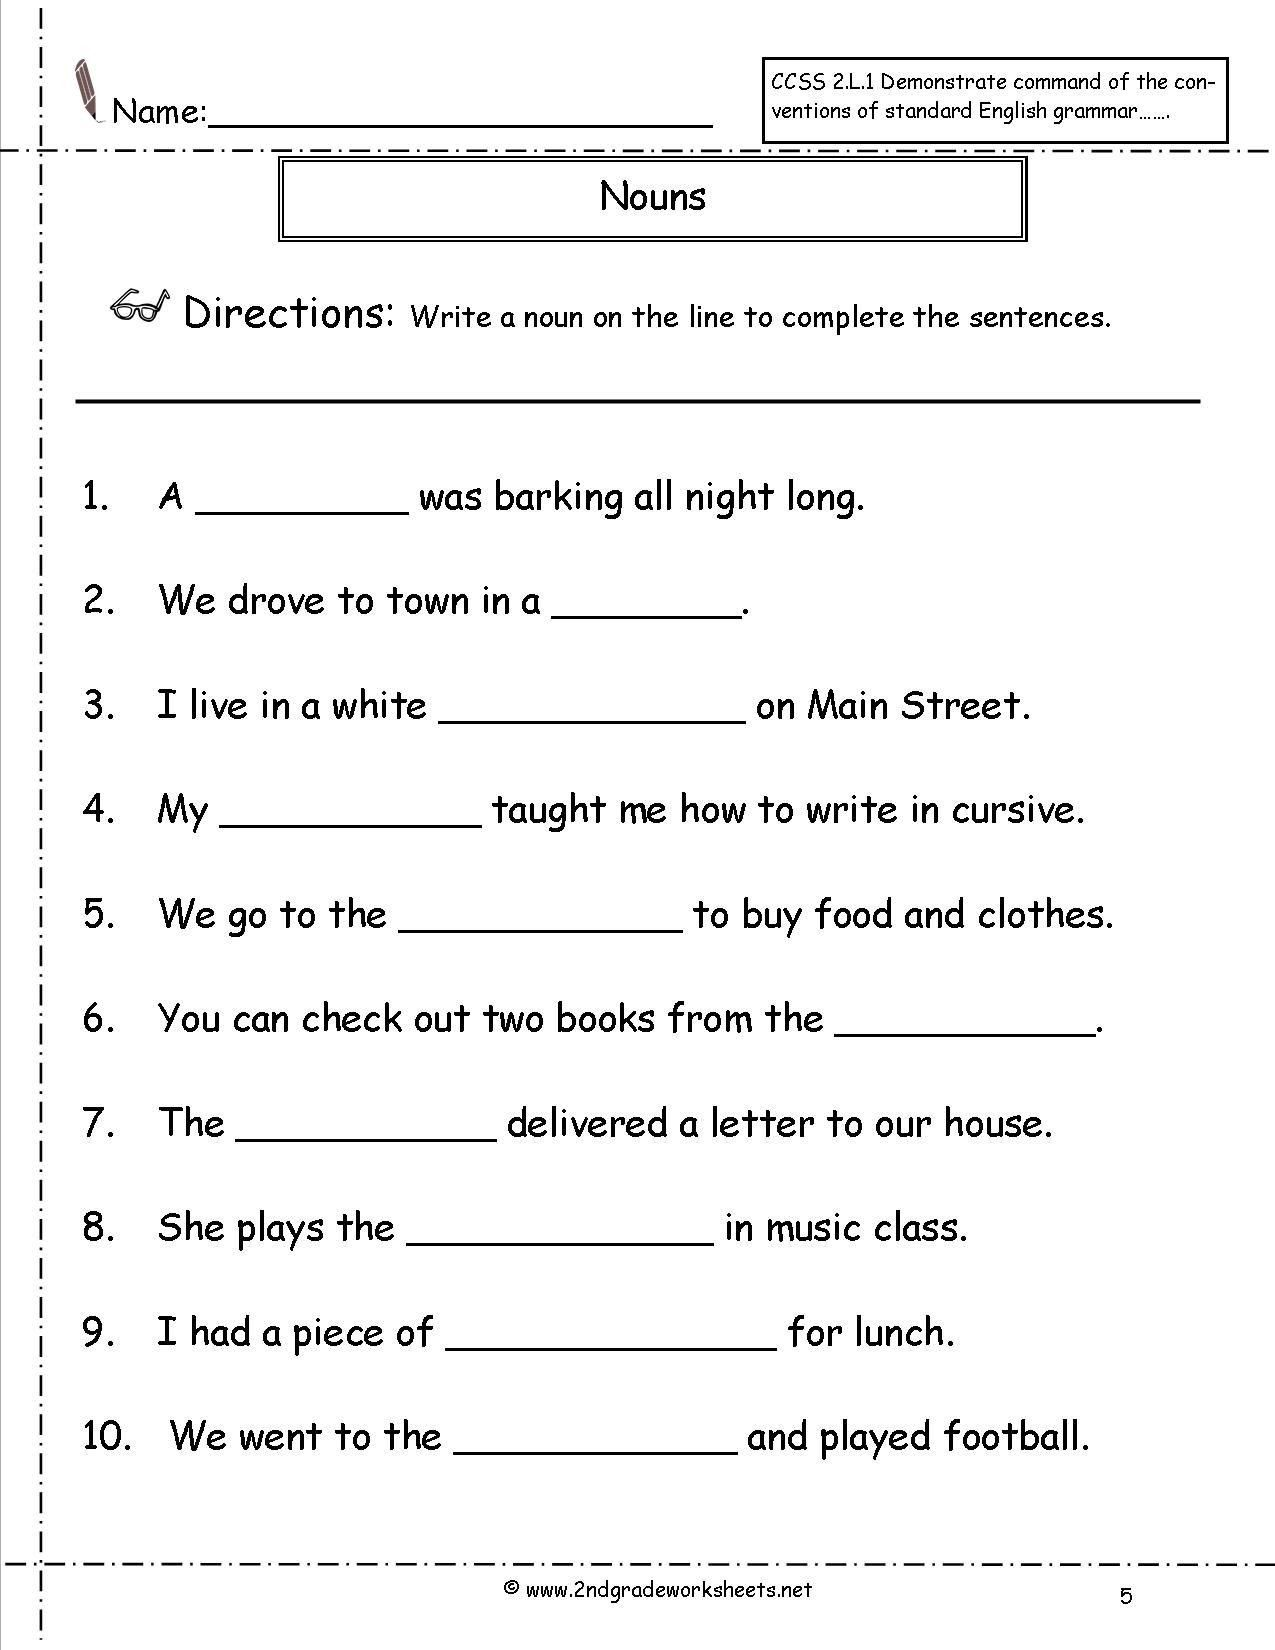 medium resolution of 3rd Grade Grammar Worksheets Free Math Worksheet 2nd Grade Grammar  Worksheets Math Workshe…   Nouns worksheet